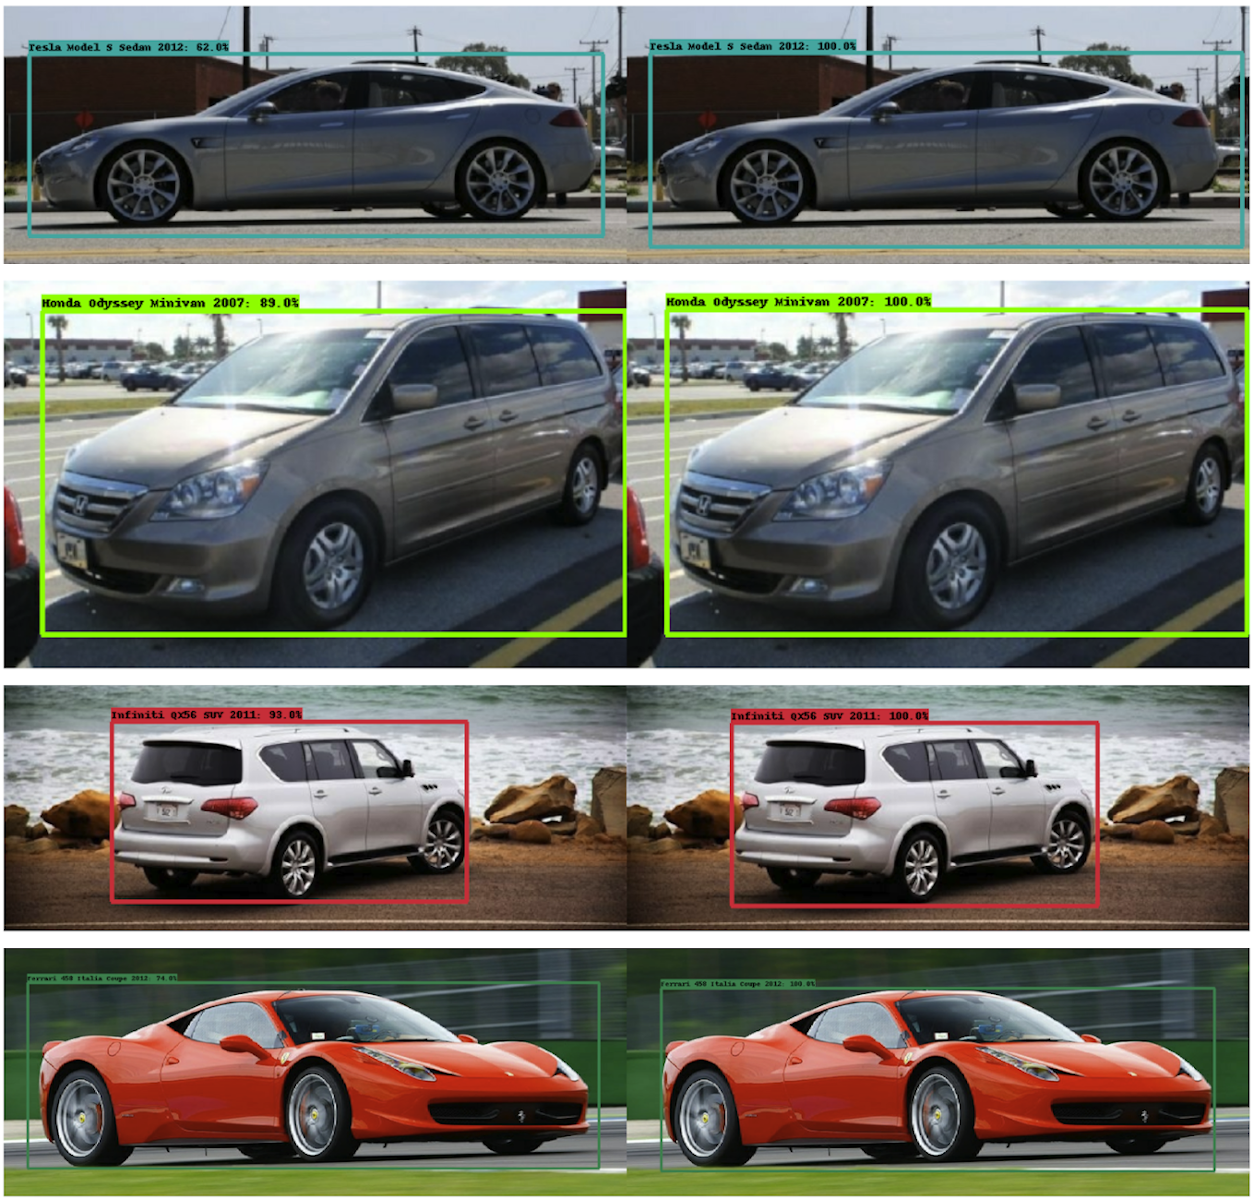 Car comparison with the prediction of the model on the left and the corresponding ground truth on the right.